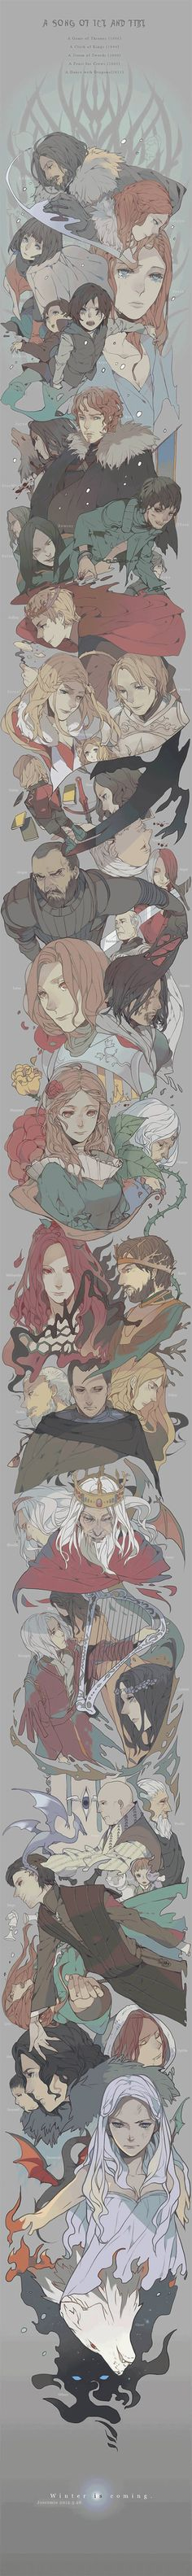 Game of Thrones, Anime Style